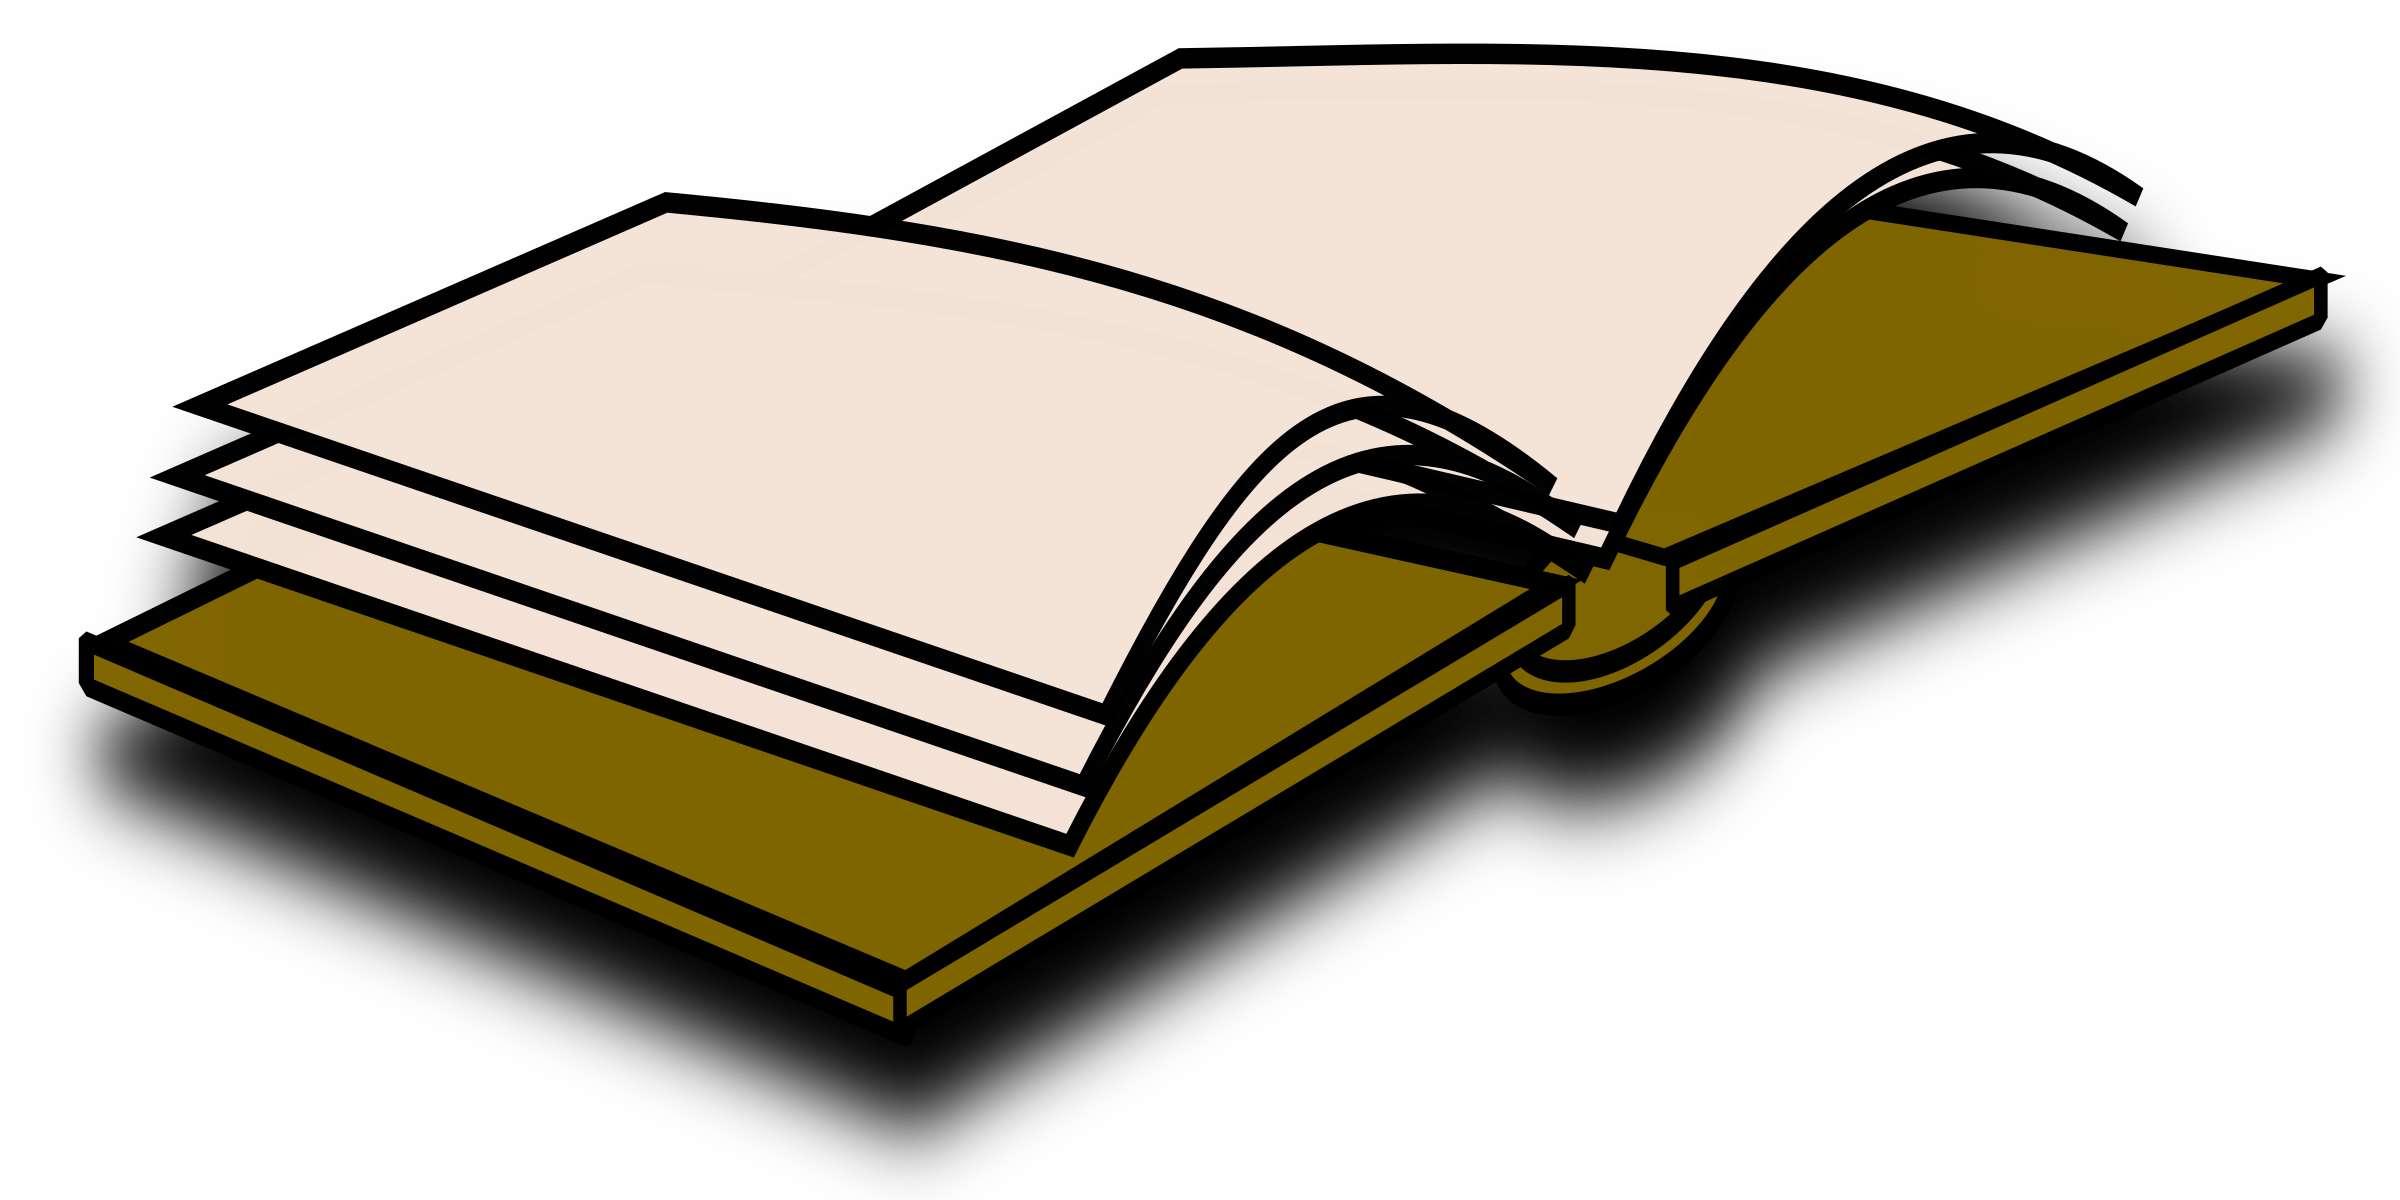 Book of knowledge clipart jpg transparent stock Clipart - book icon jpg transparent stock